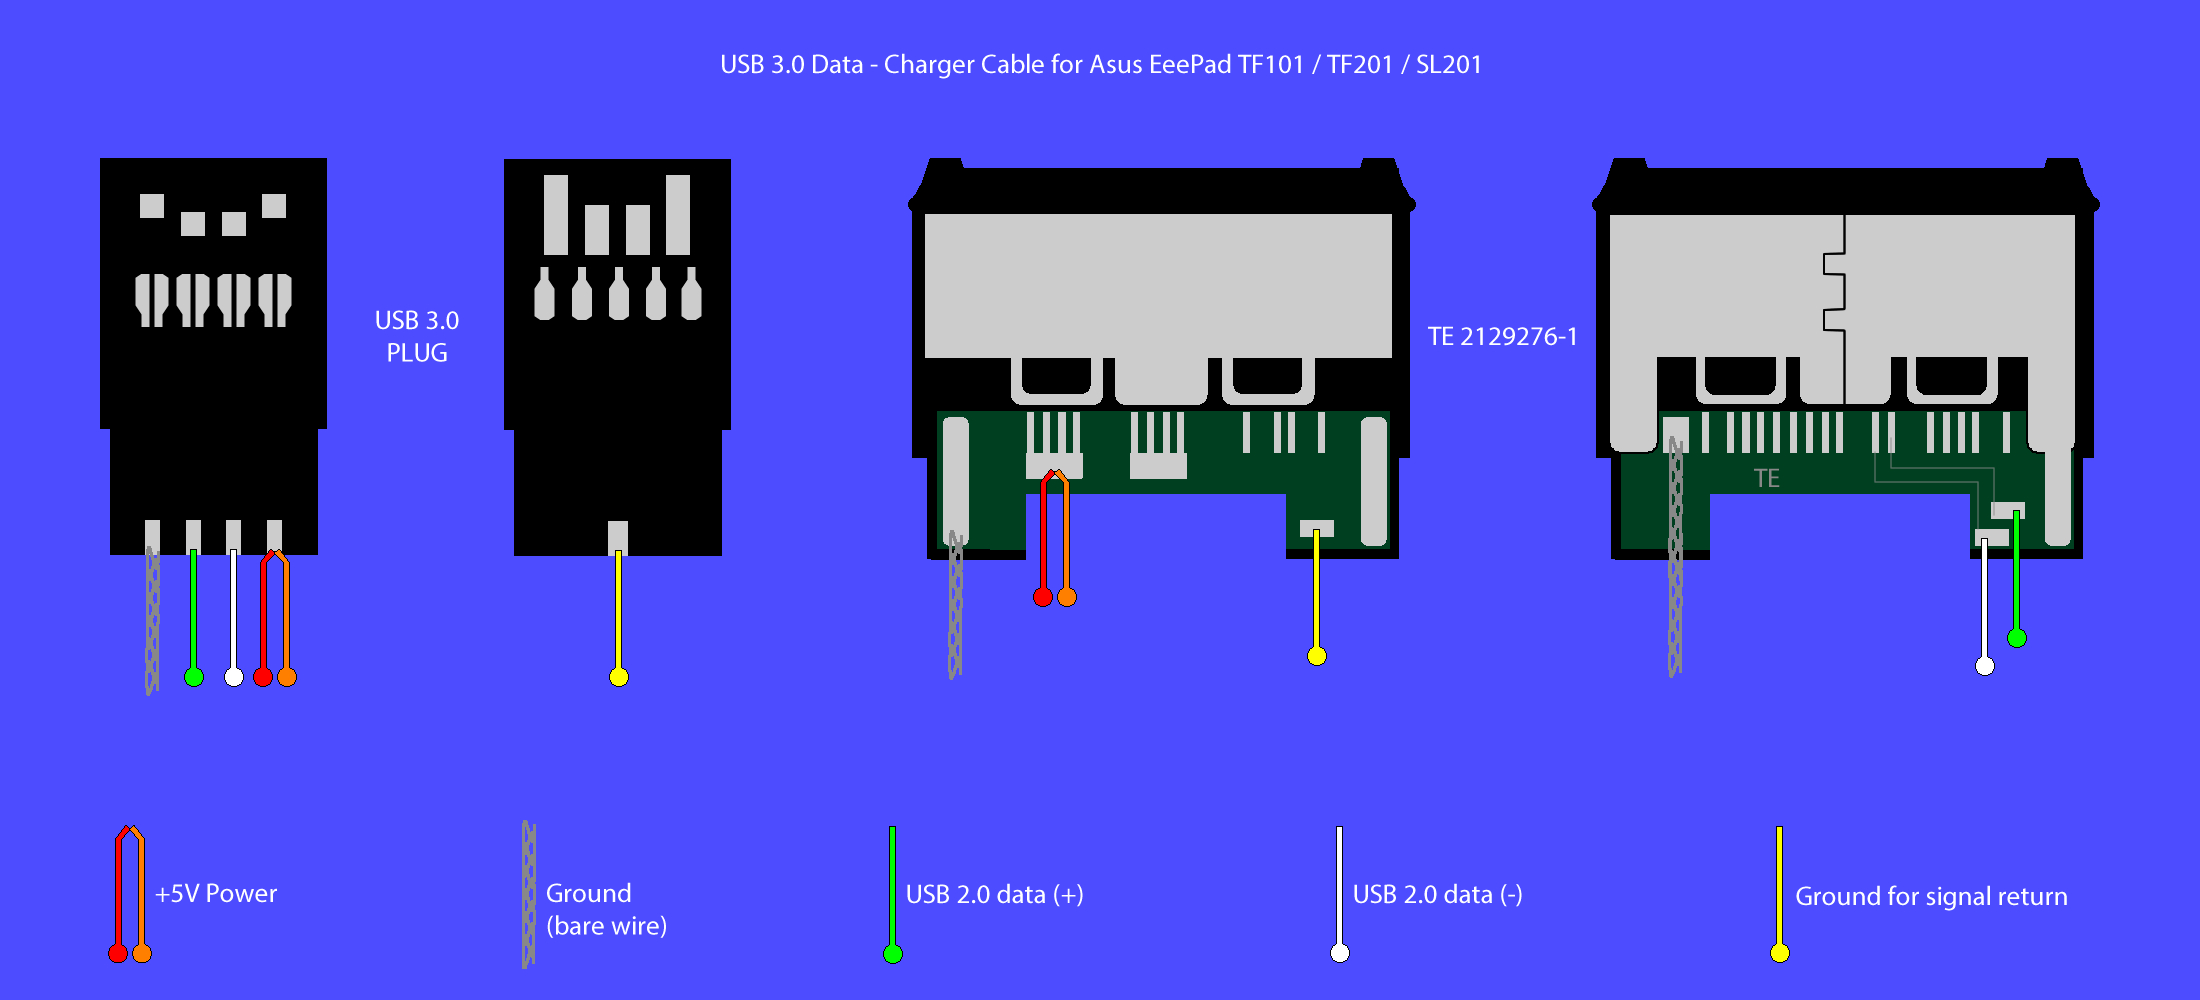 Galaxy Tab Charger Wiring Diagram - Www.casei.store •